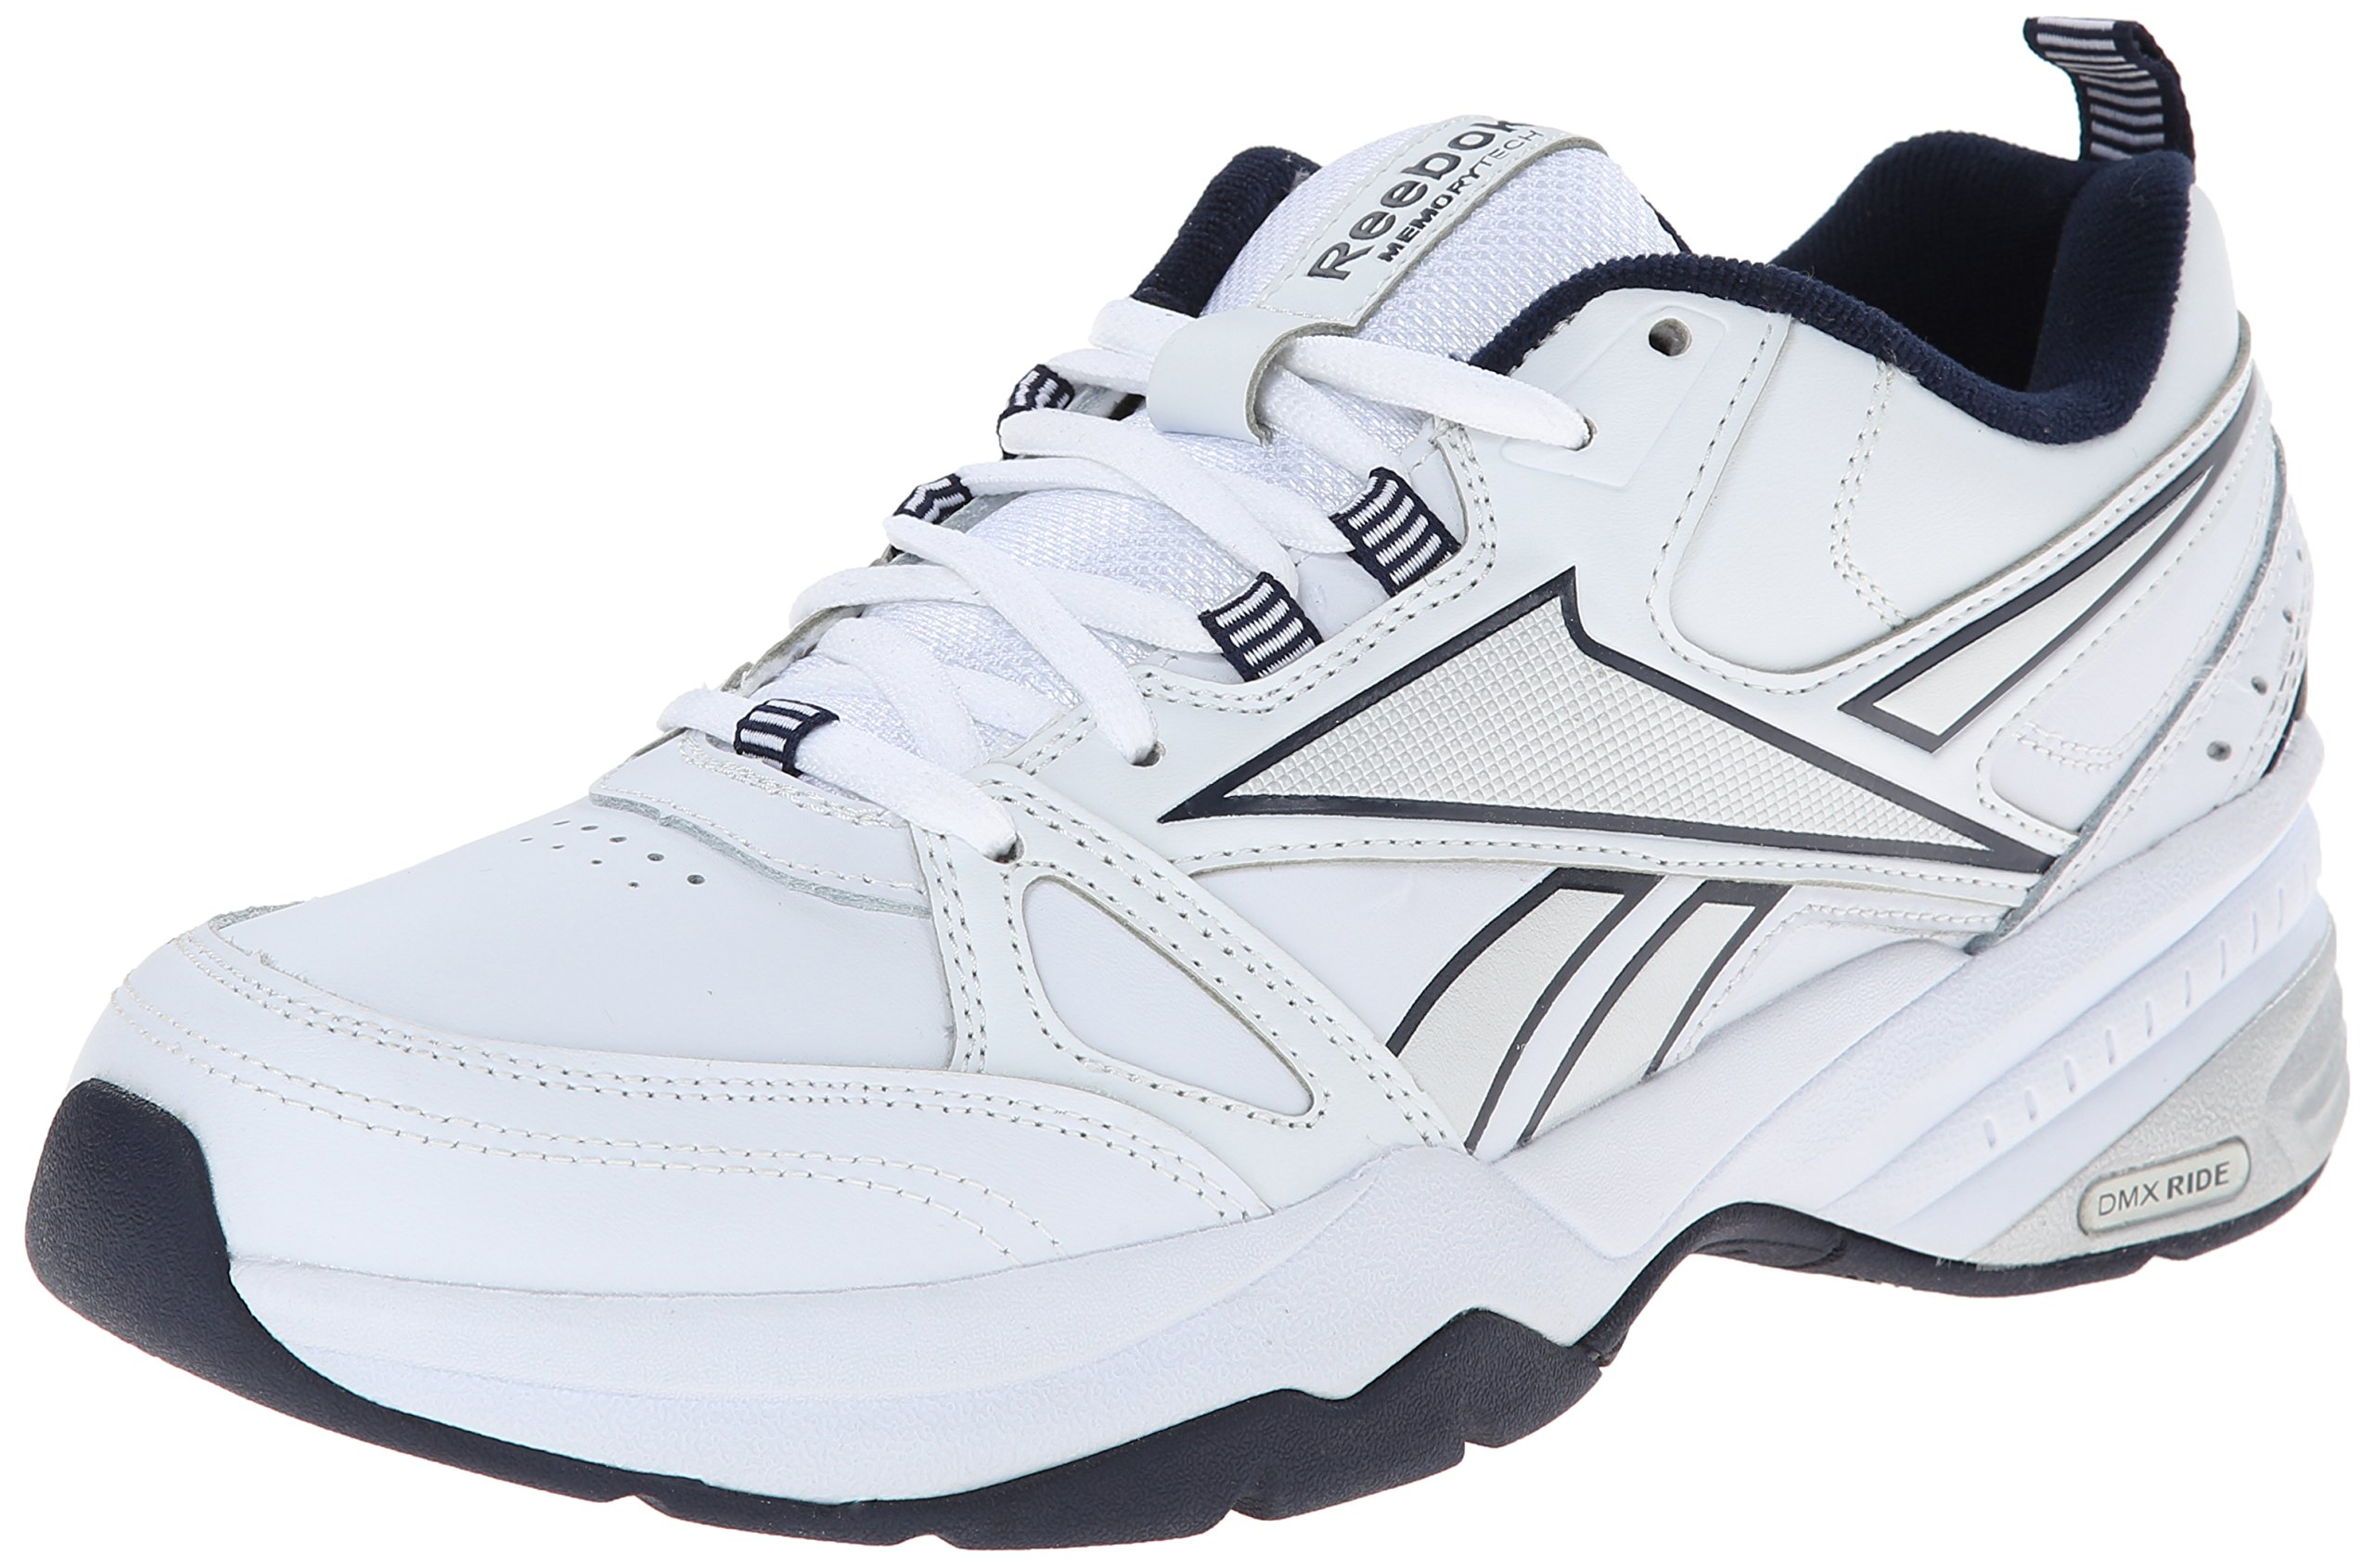 Reebok Men S Royal Trainer Mt Cross Trainer Shoe